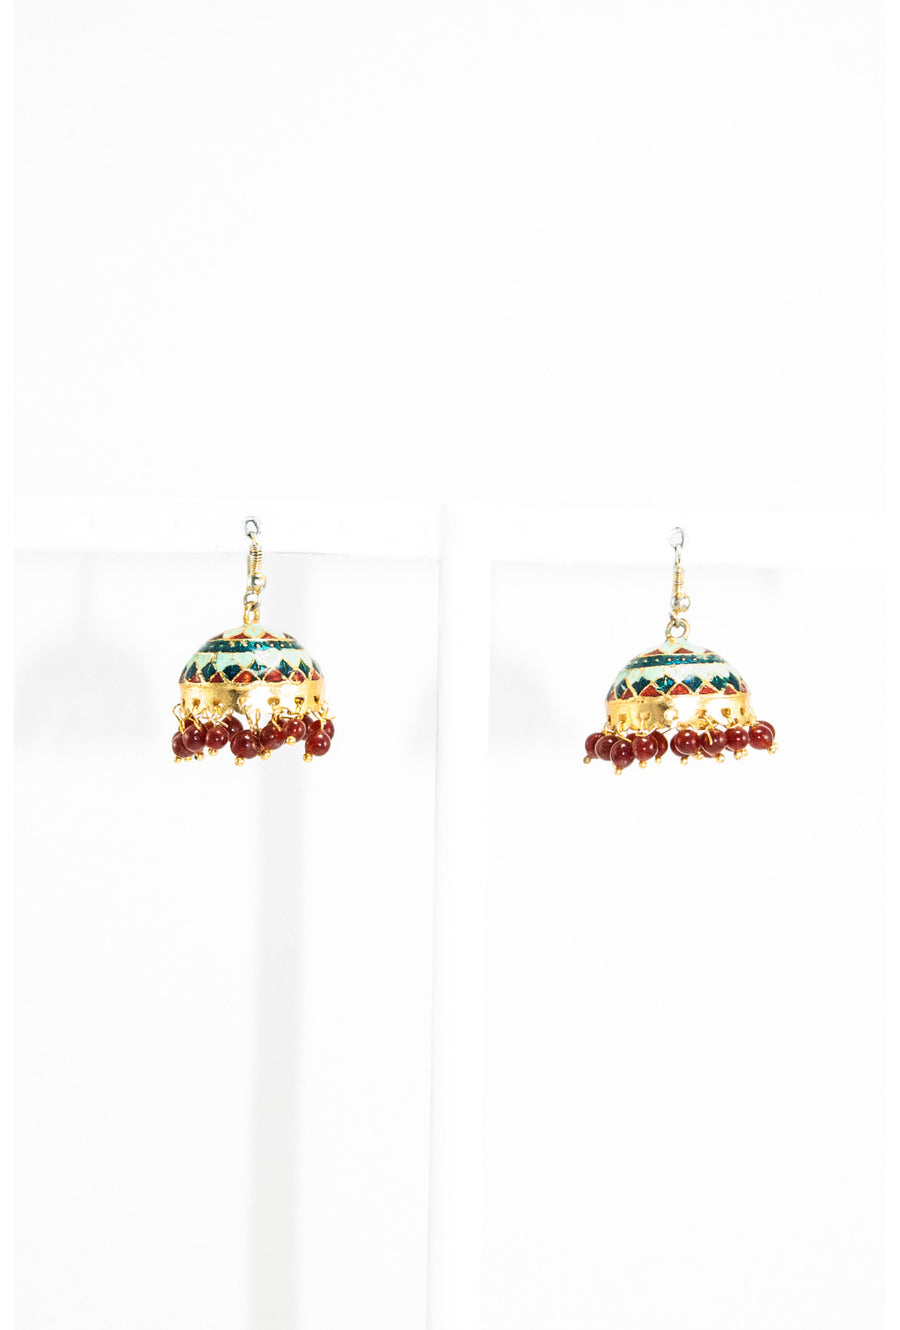 Multicolor meenawork earring with red drop - Desi Royale